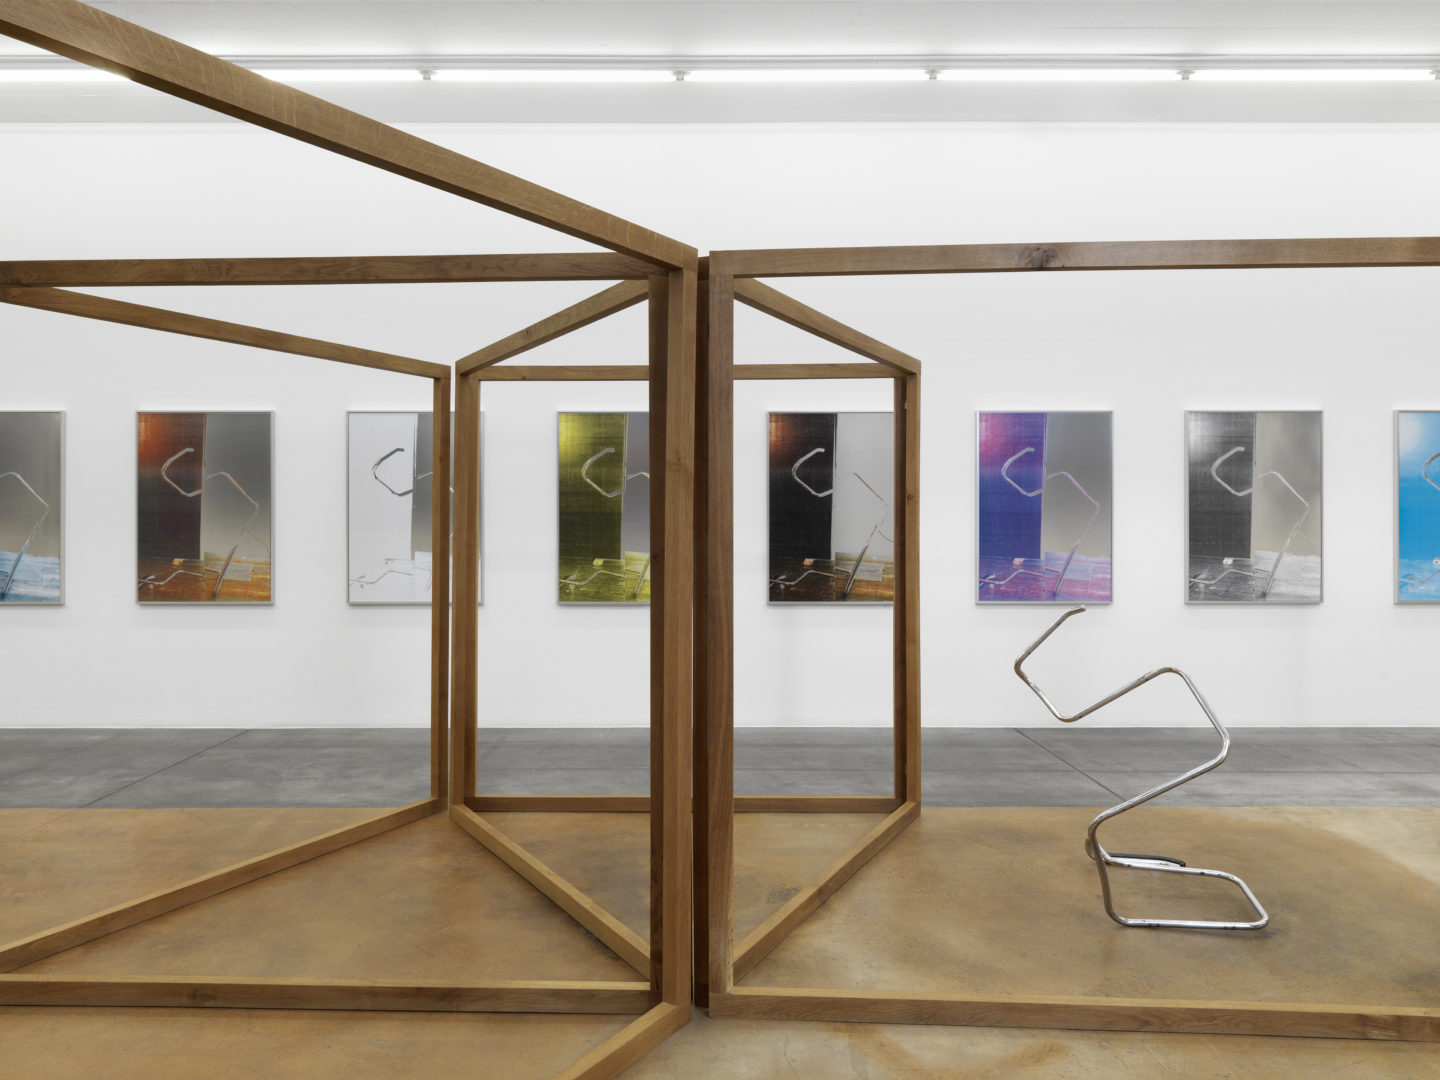 """Annik-Exhibition view """"Nouvelles Images"""" at MAMCO Geneva / Photo: Annik Wetter / Courtesy: the artist and Mamco _2018-02-25_10085"""